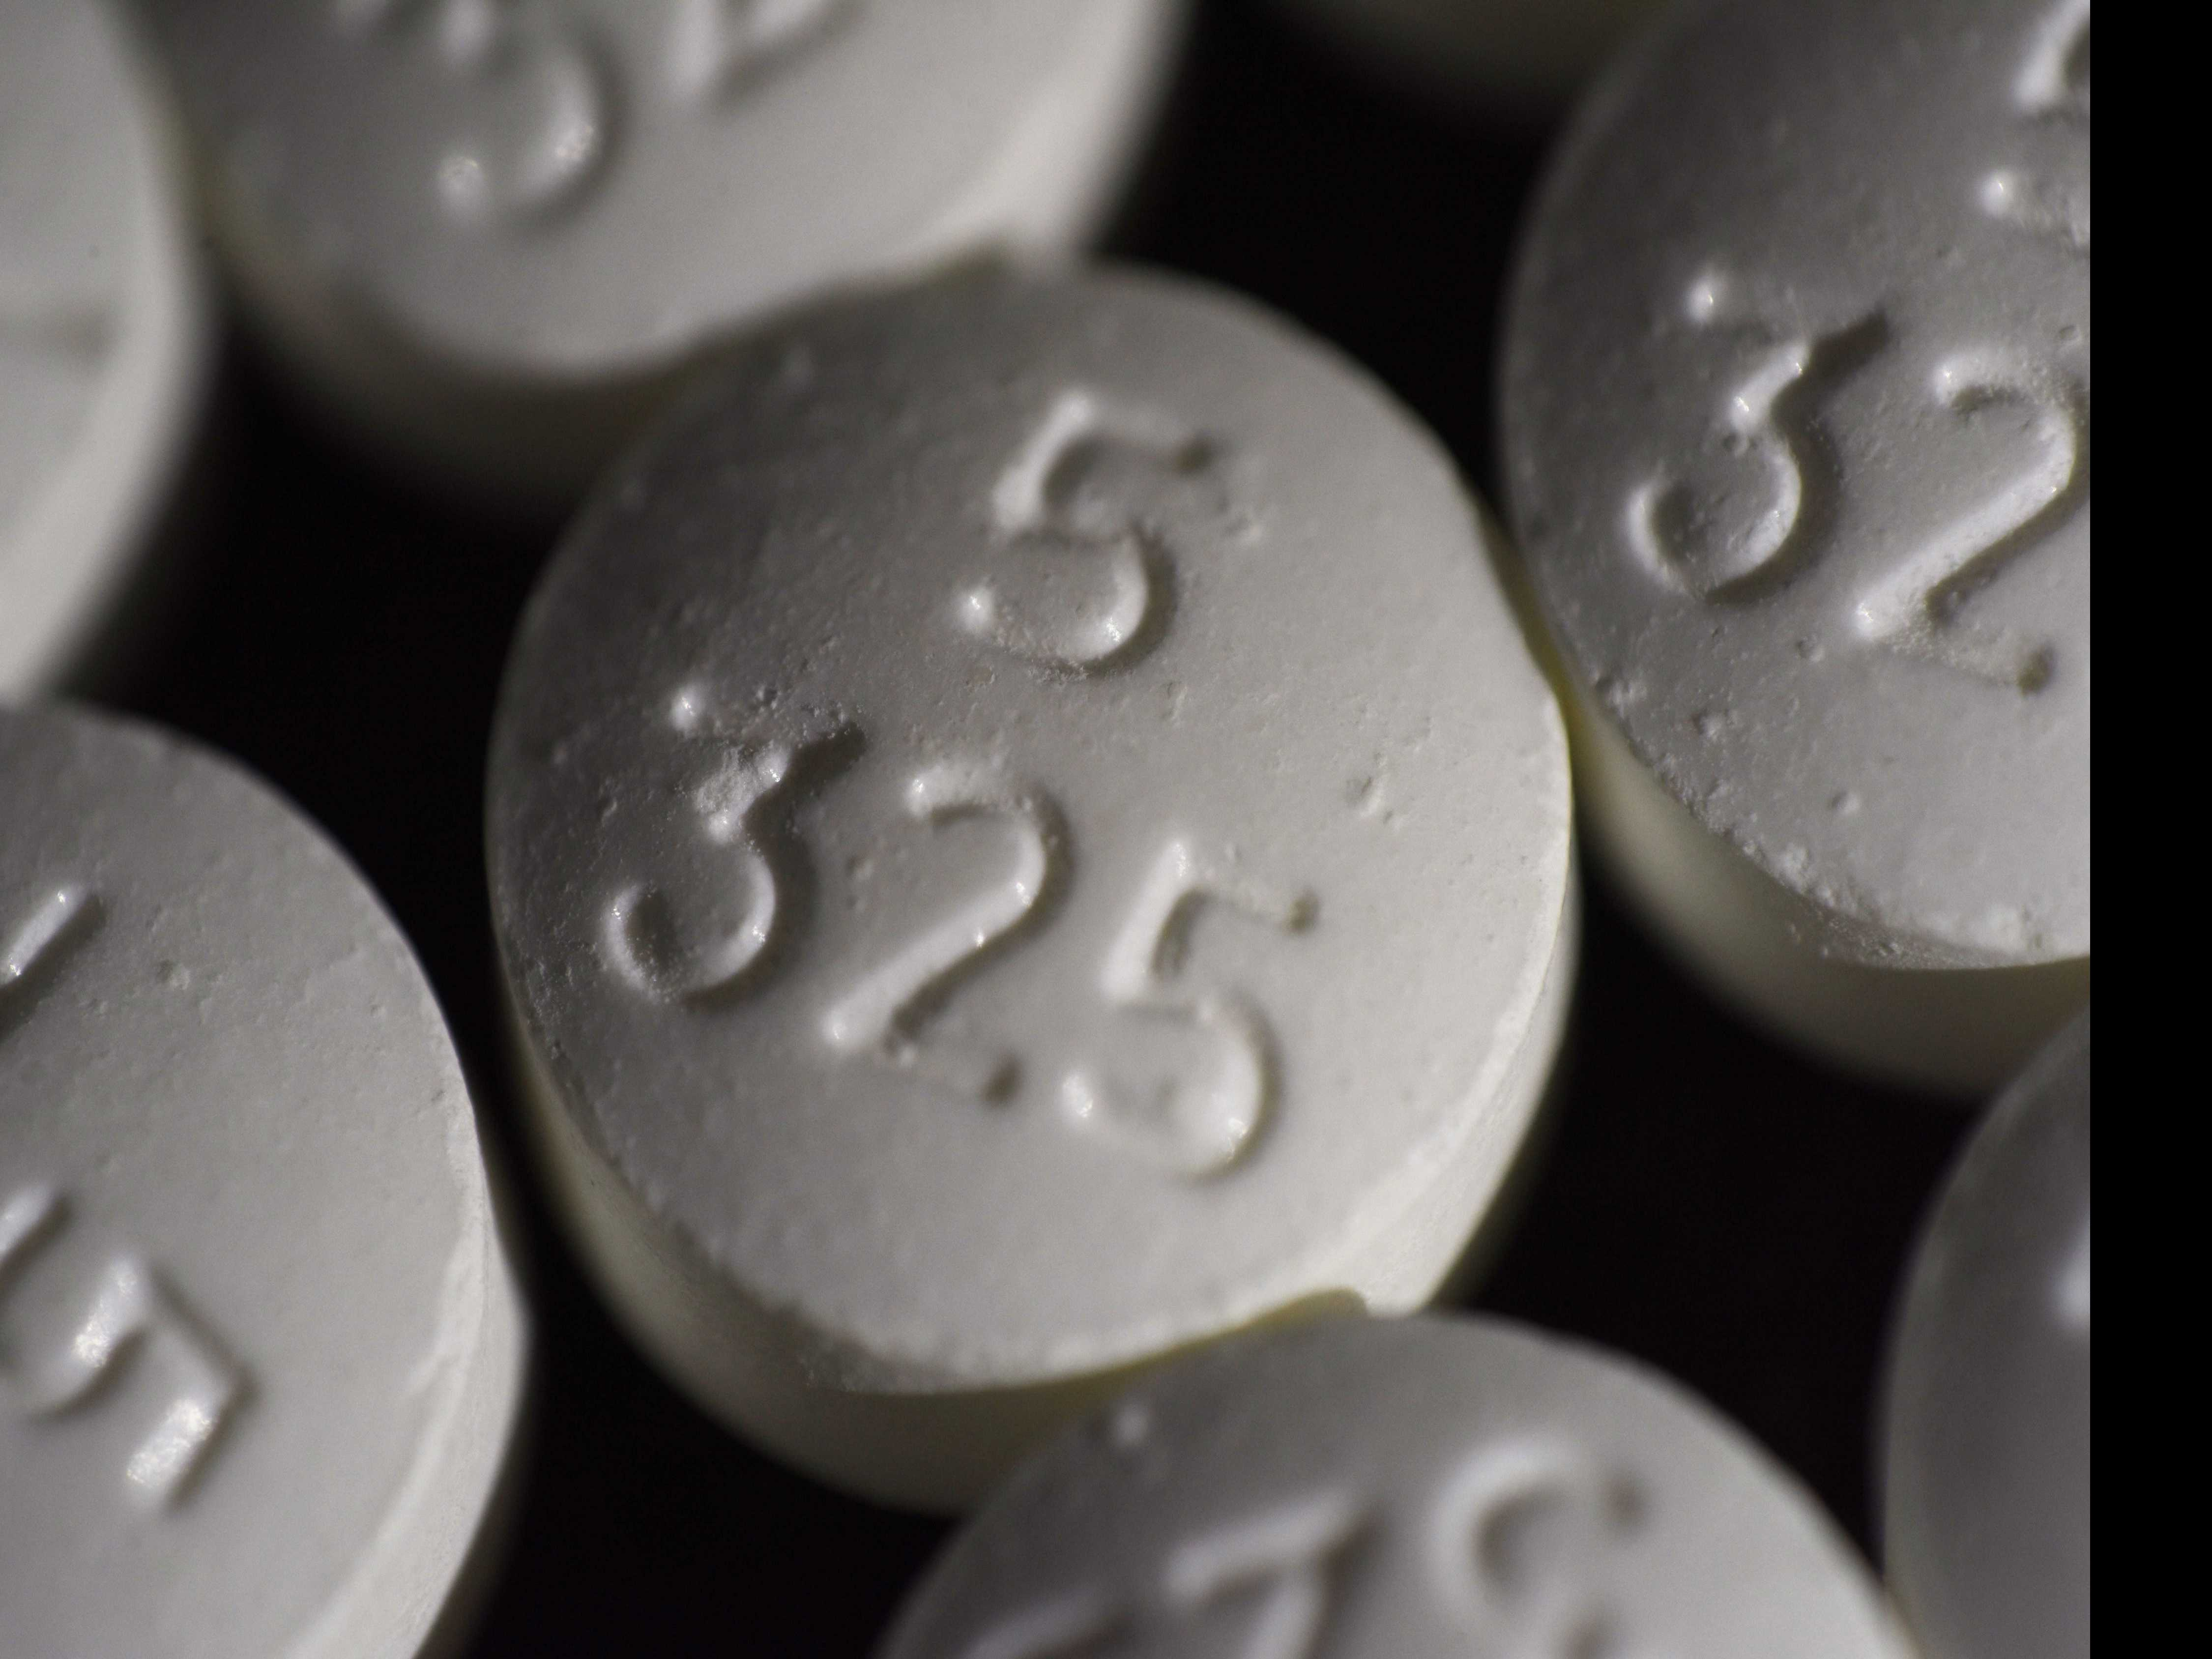 Congressional Panel Probing Opioids Abuse Targets Distributor Firms